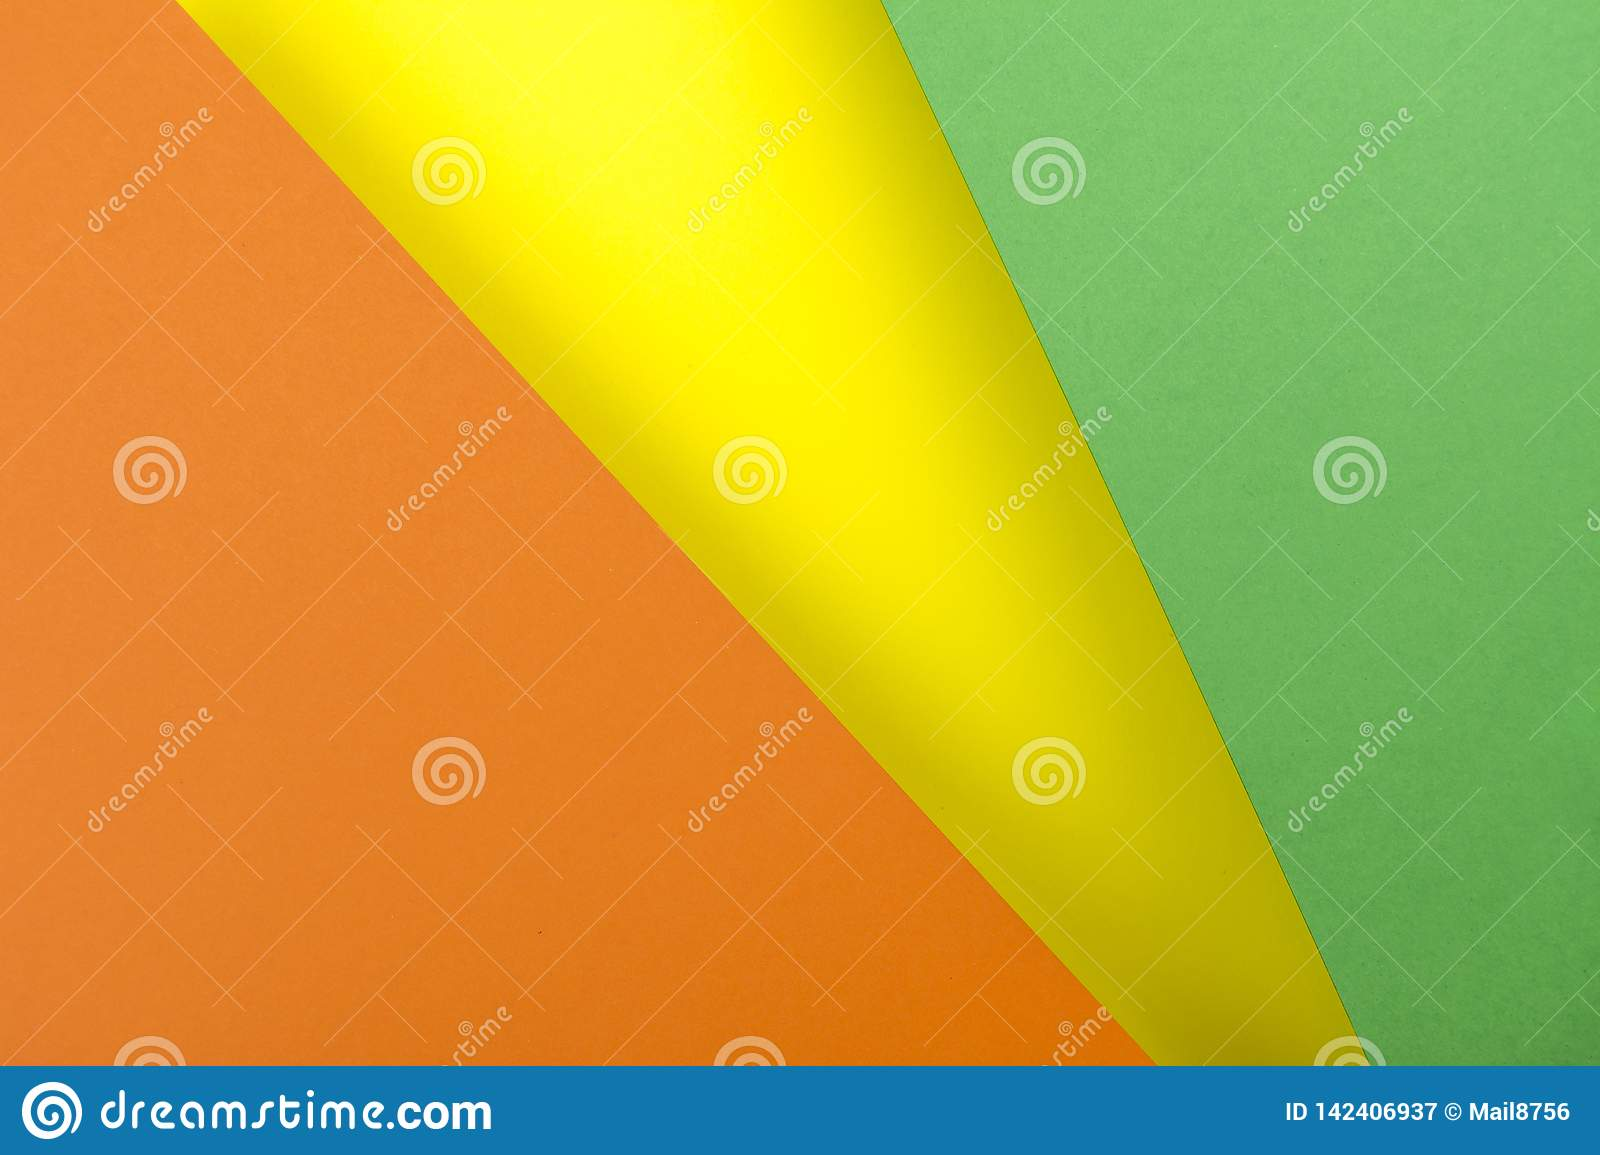 Sheets of paper yellow, green, orange colors lined with shade